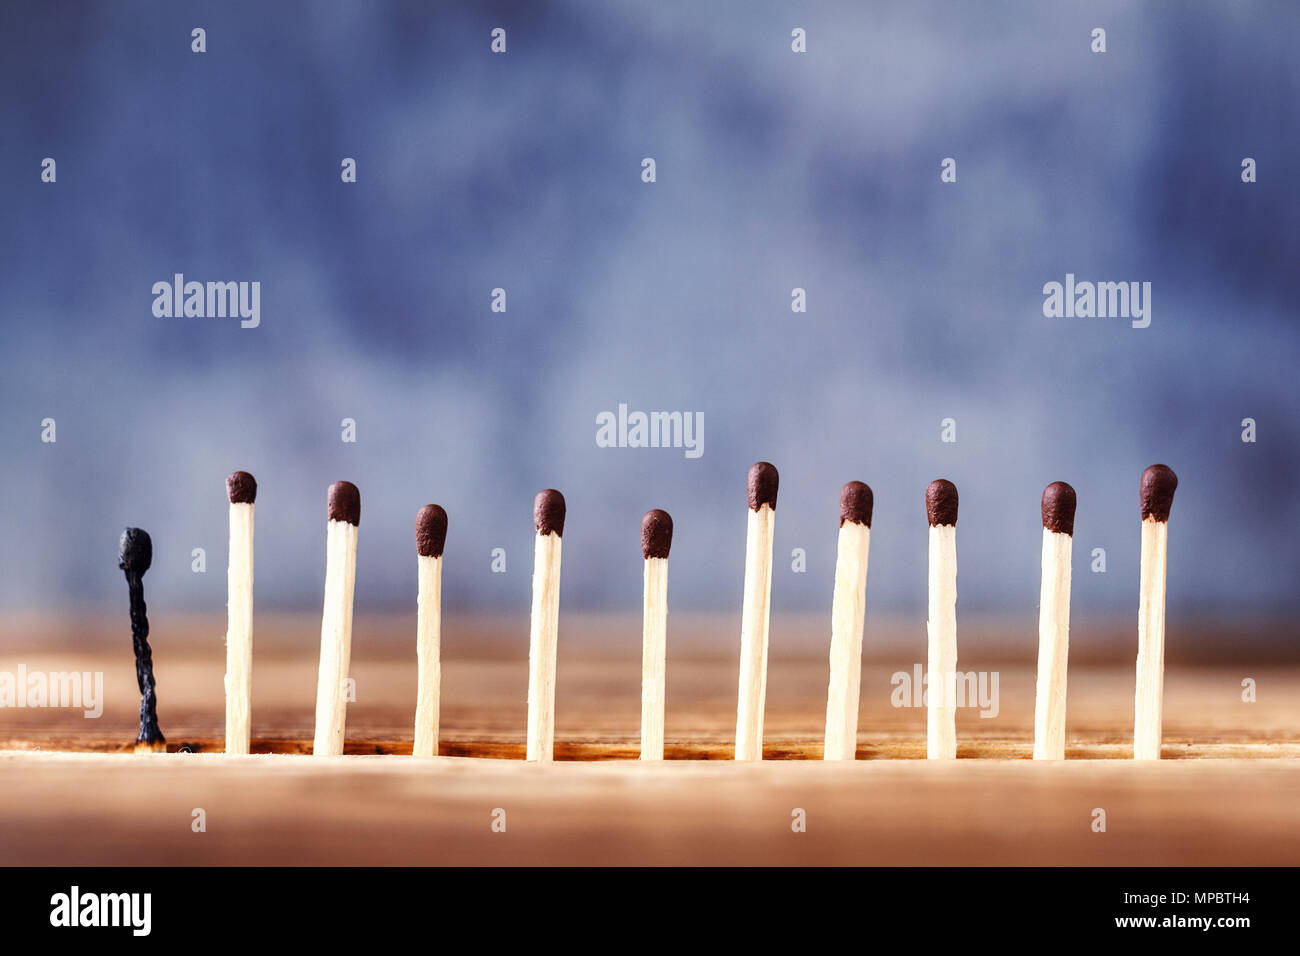 a row of matches on a wooden background, the last match burned down. Extinct match next to unlit - Stock Image